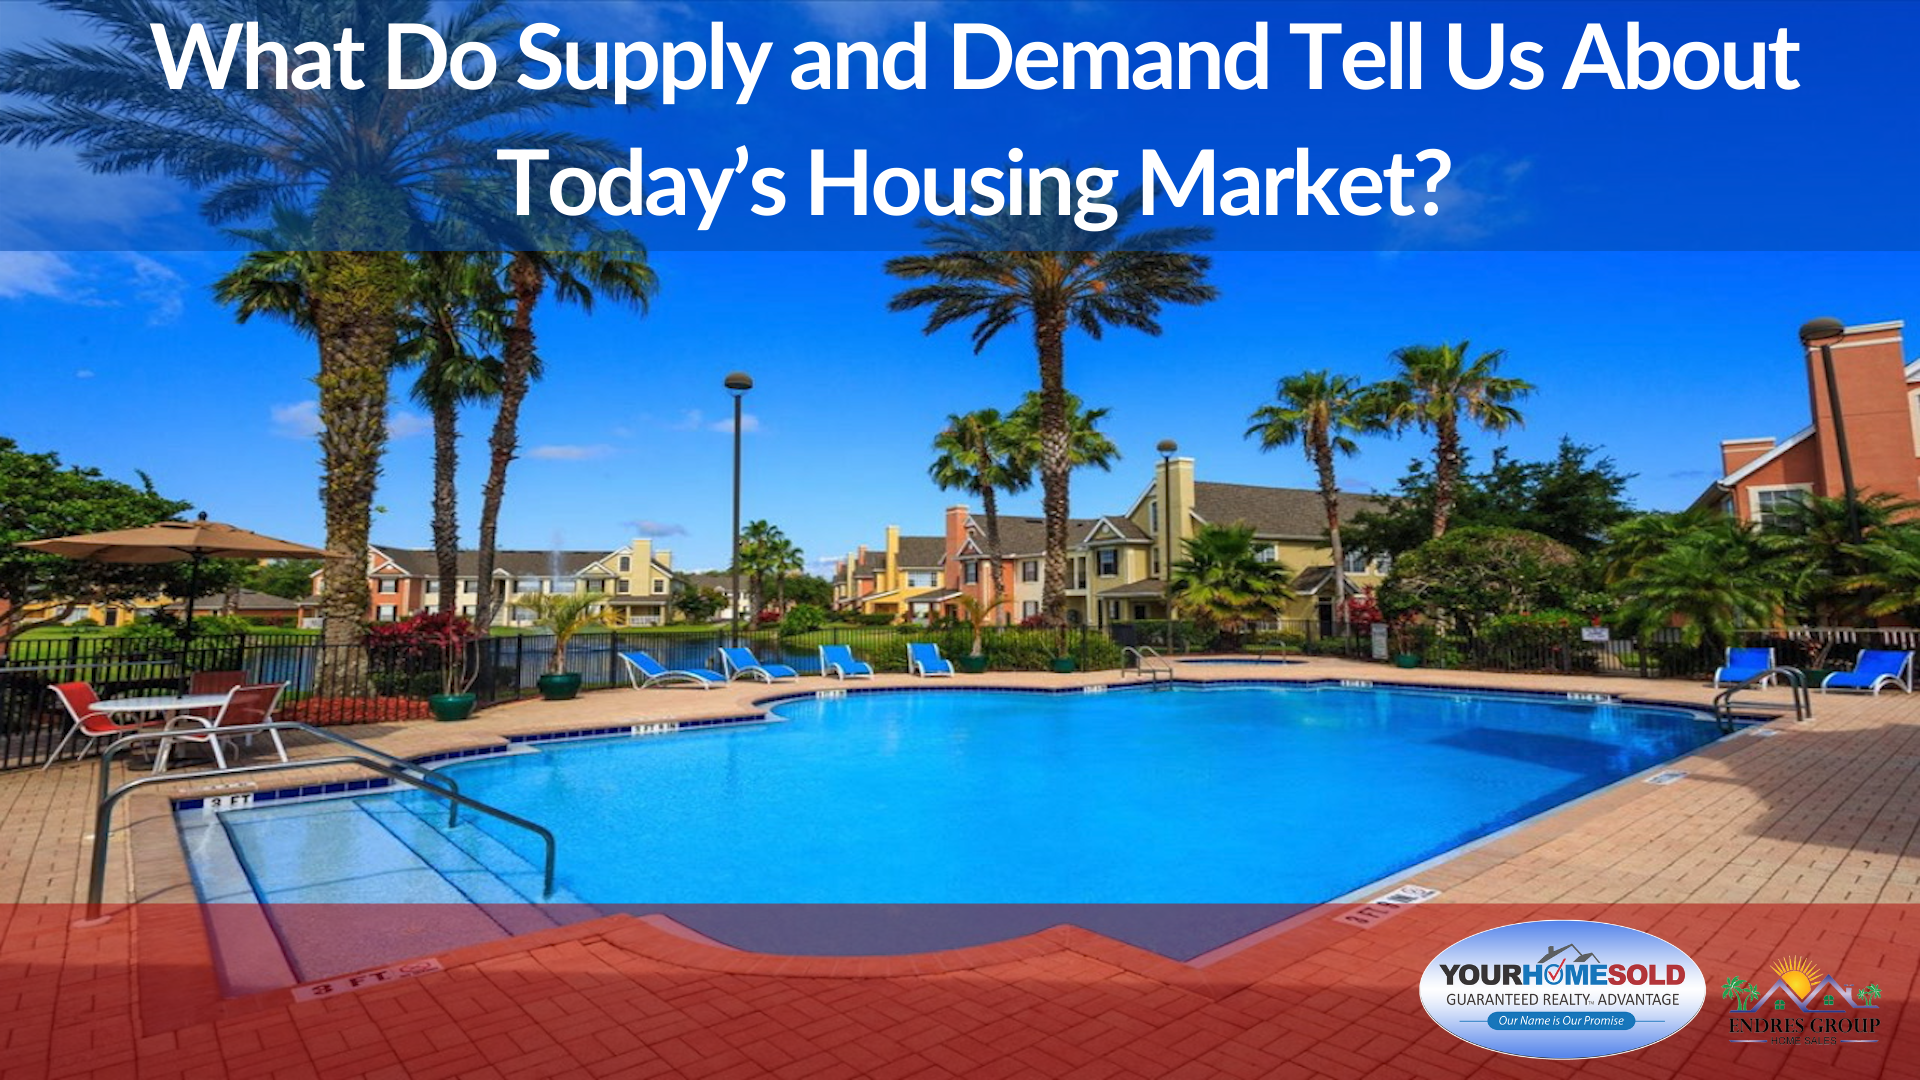 What Do Supply and Demand Tell Us About Today's Housing Market.png